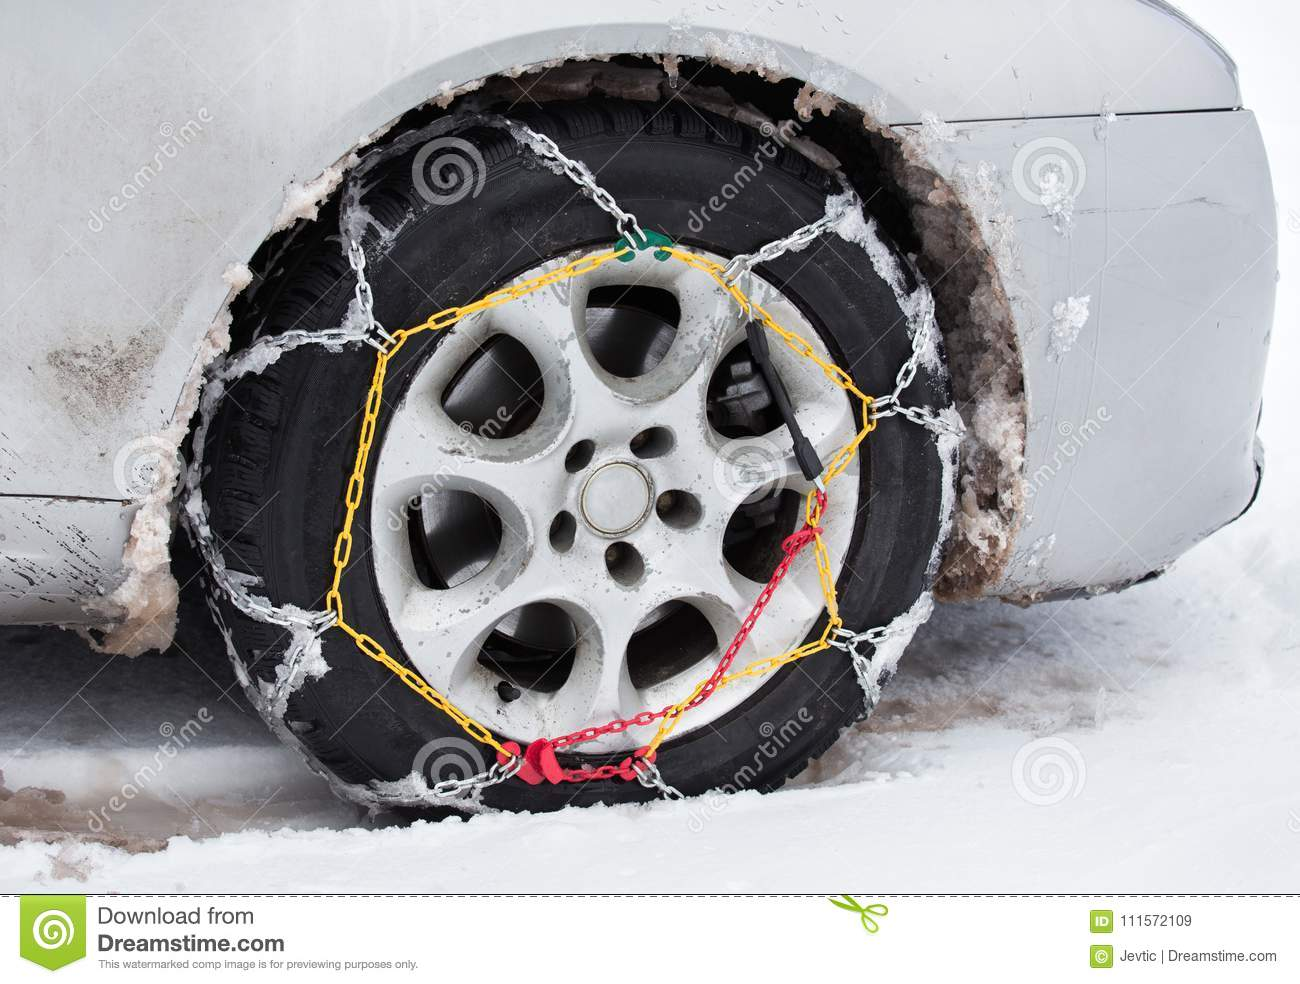 Tire chains on car in snow